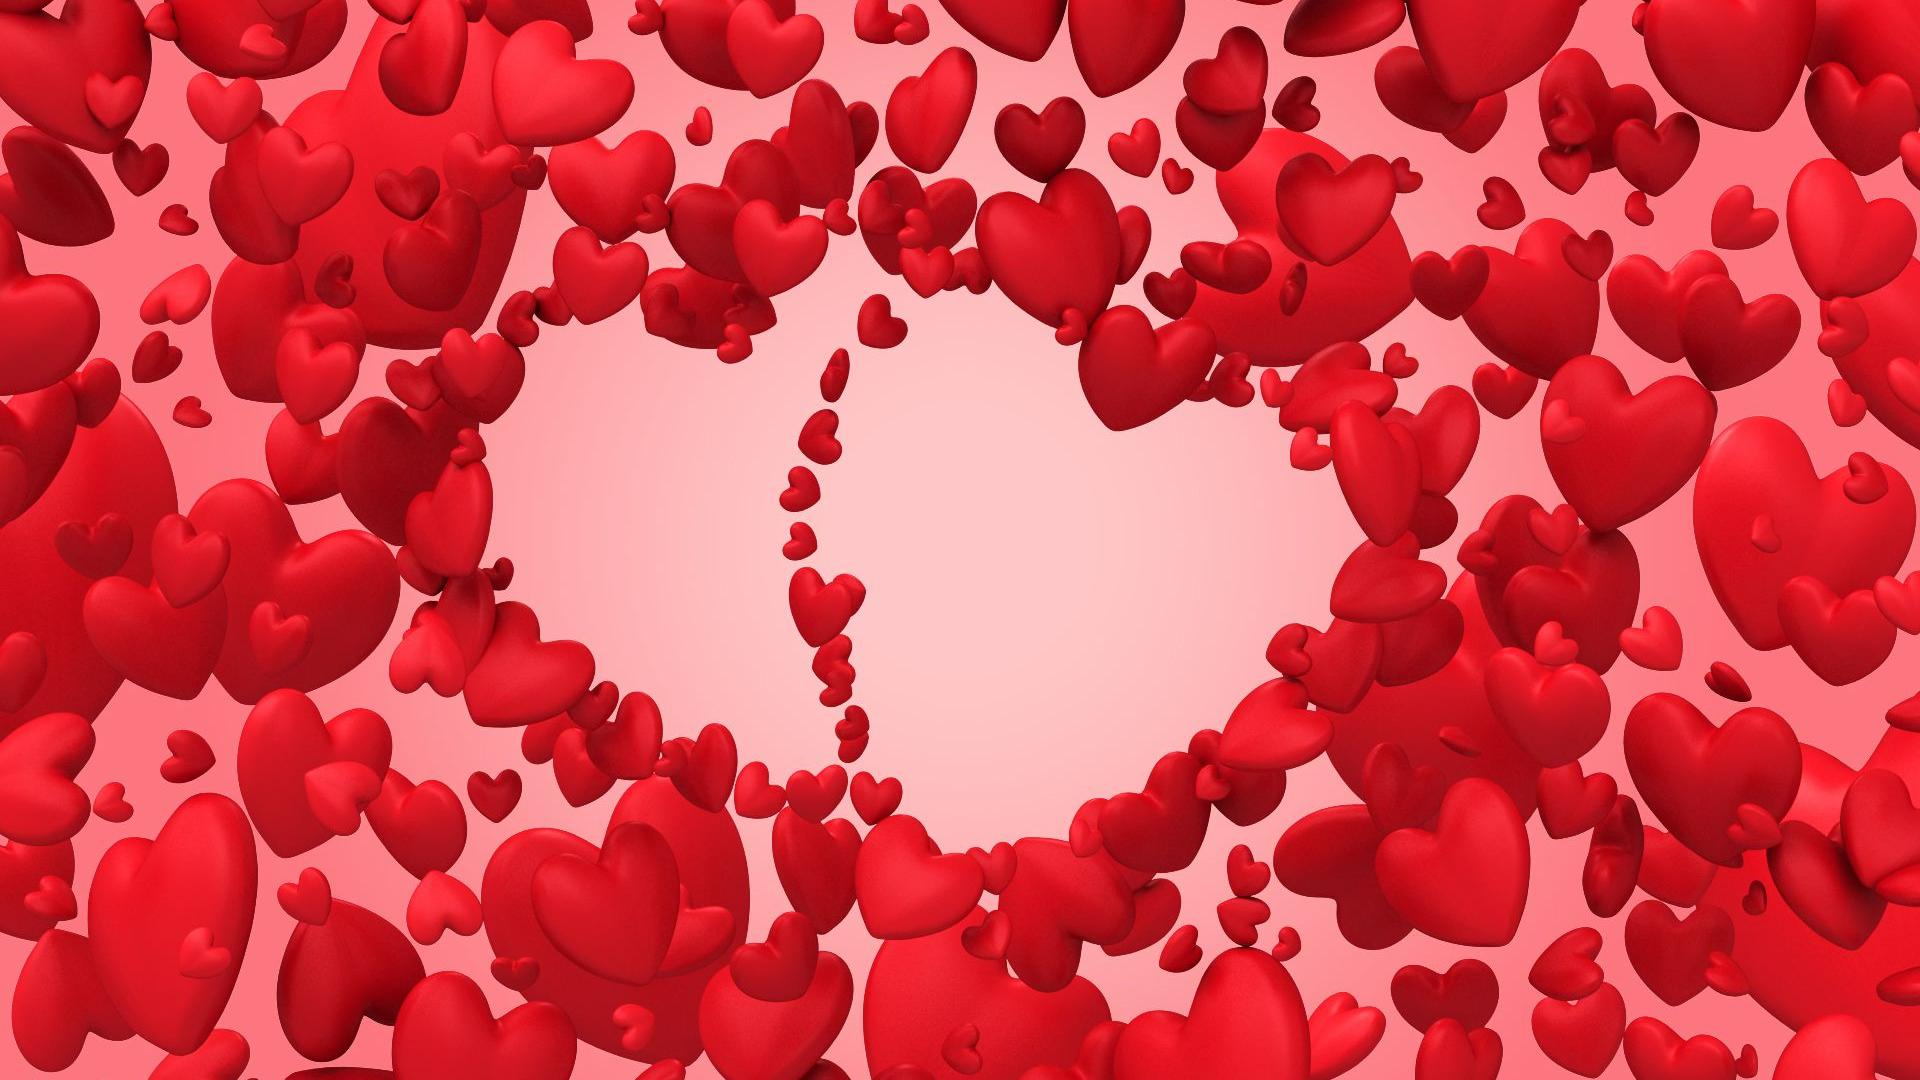 Download Valentine Day HD Wallpaper 2015 Happy Wallpapers Images For Desktop